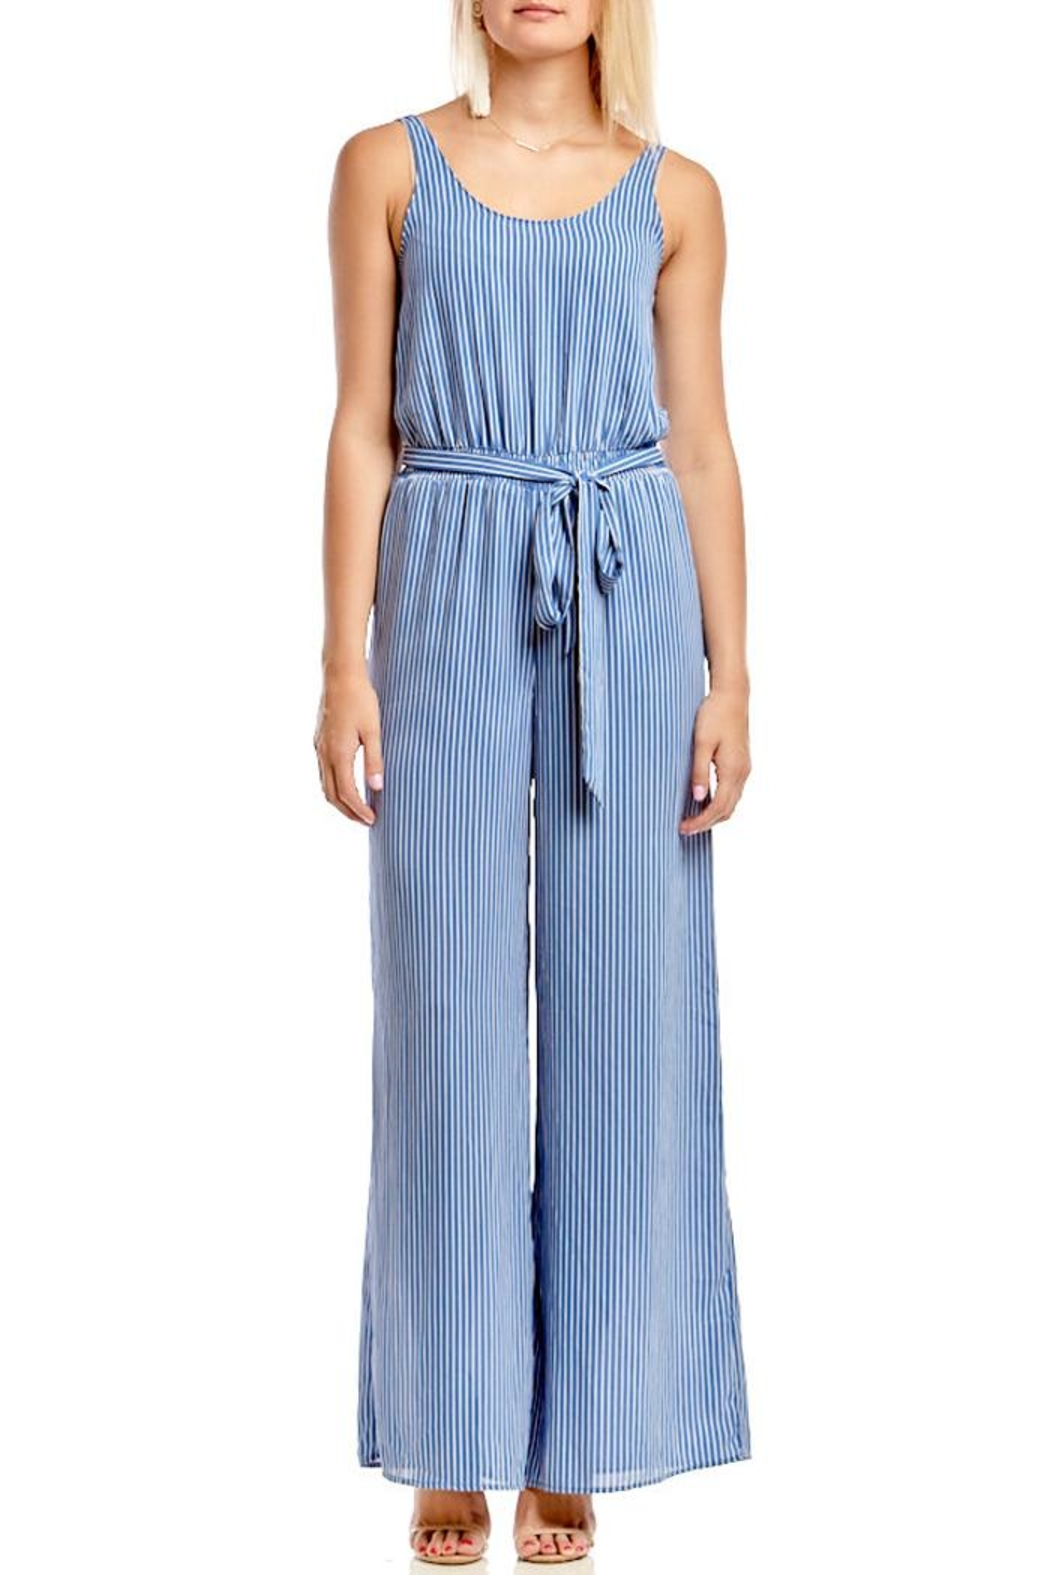 d7fe88b02eb4 Asher by Fab rik Benjamin Jumpsuit - Blue from Atlanta by Asher by ...